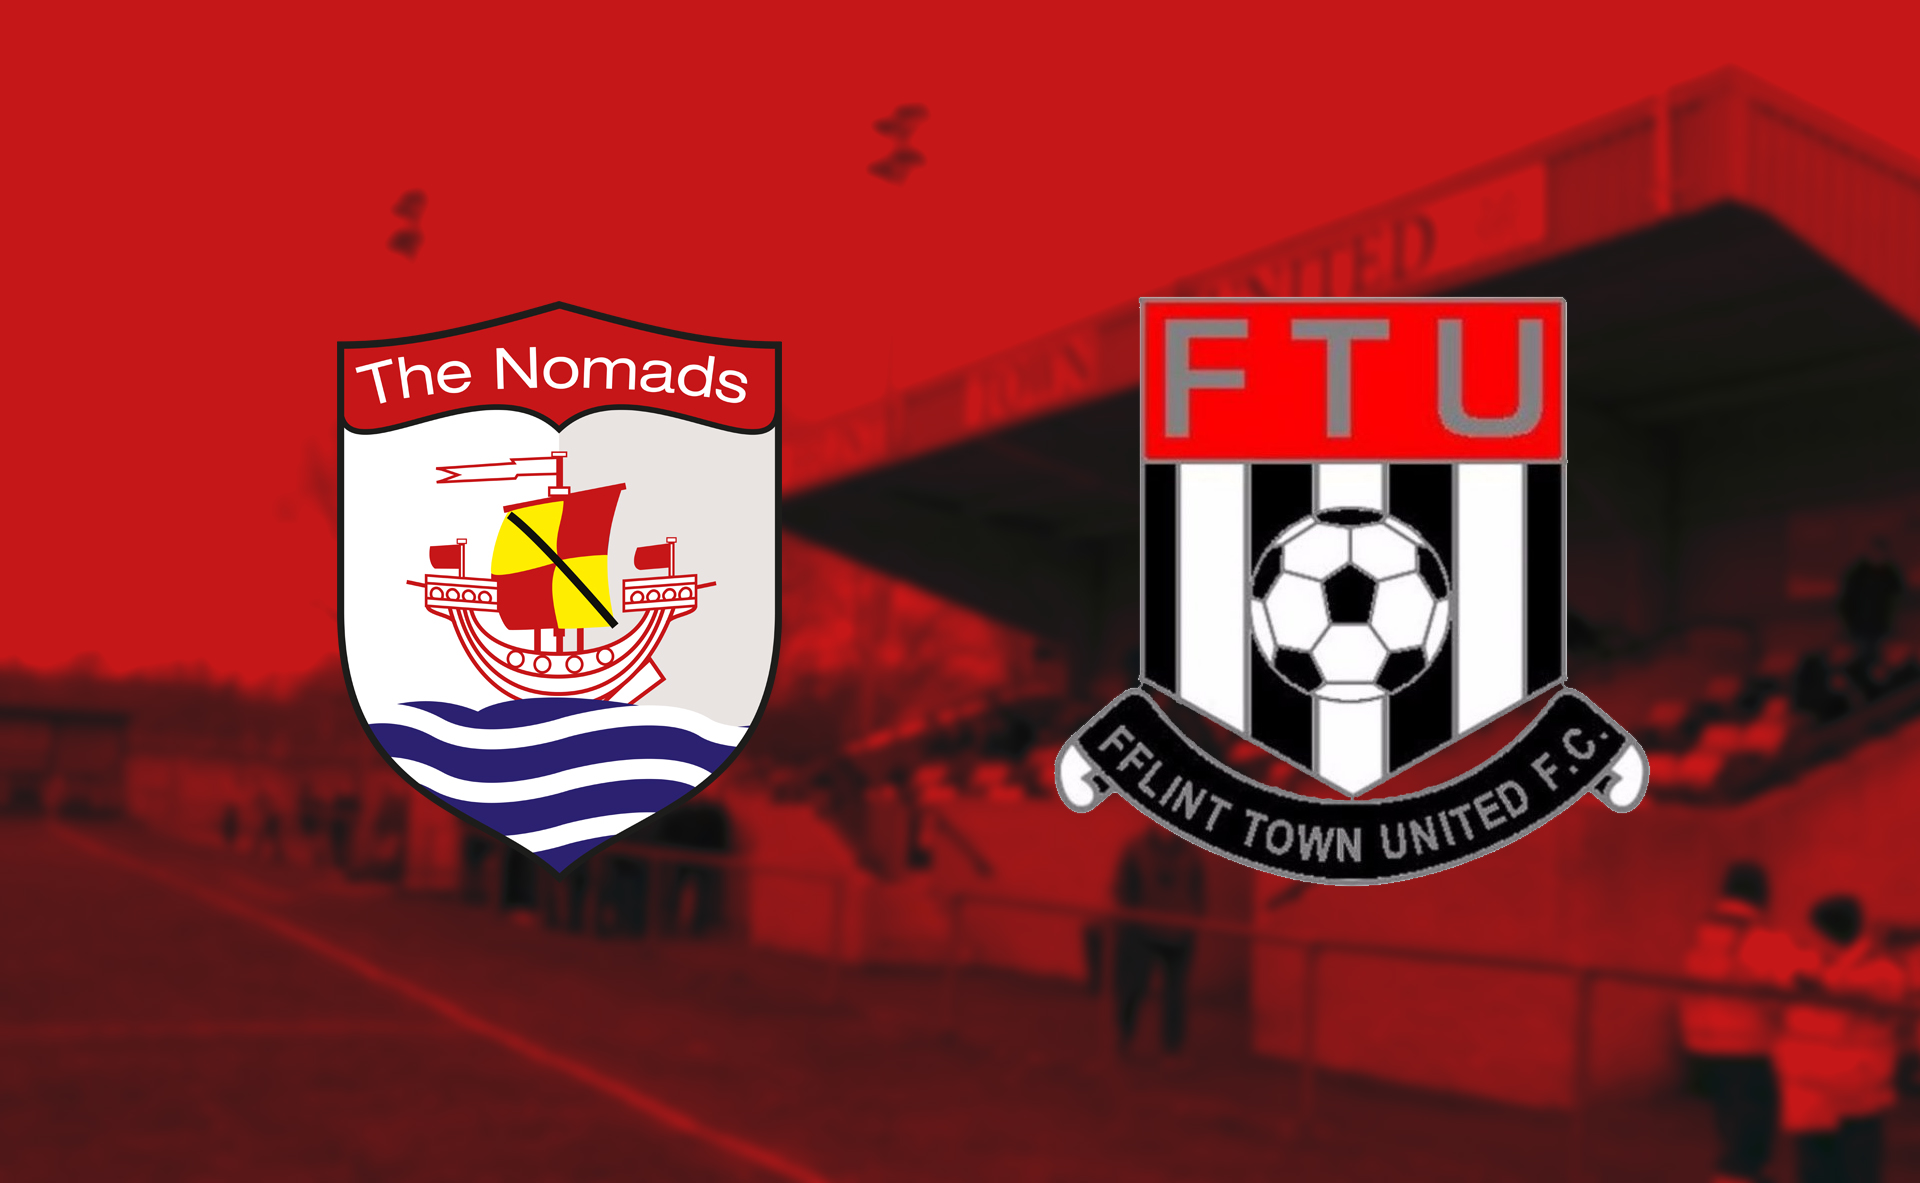 Connah's Quay Nomads FC and Flint Town Utd FC are working together to explore the potential to create an improved stadium facility that would be suitable for both clubs to share.